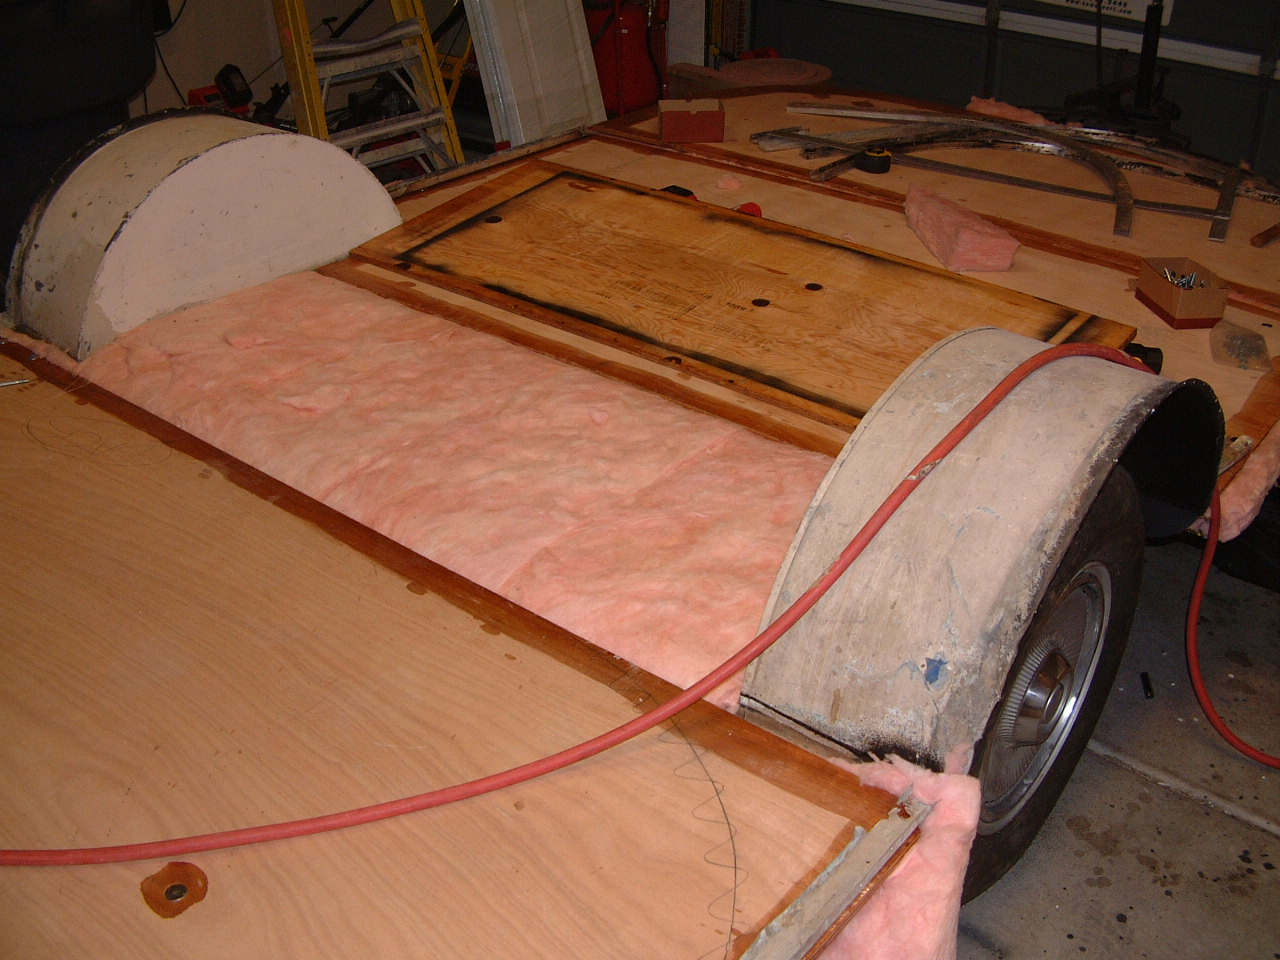 Floor and insulation